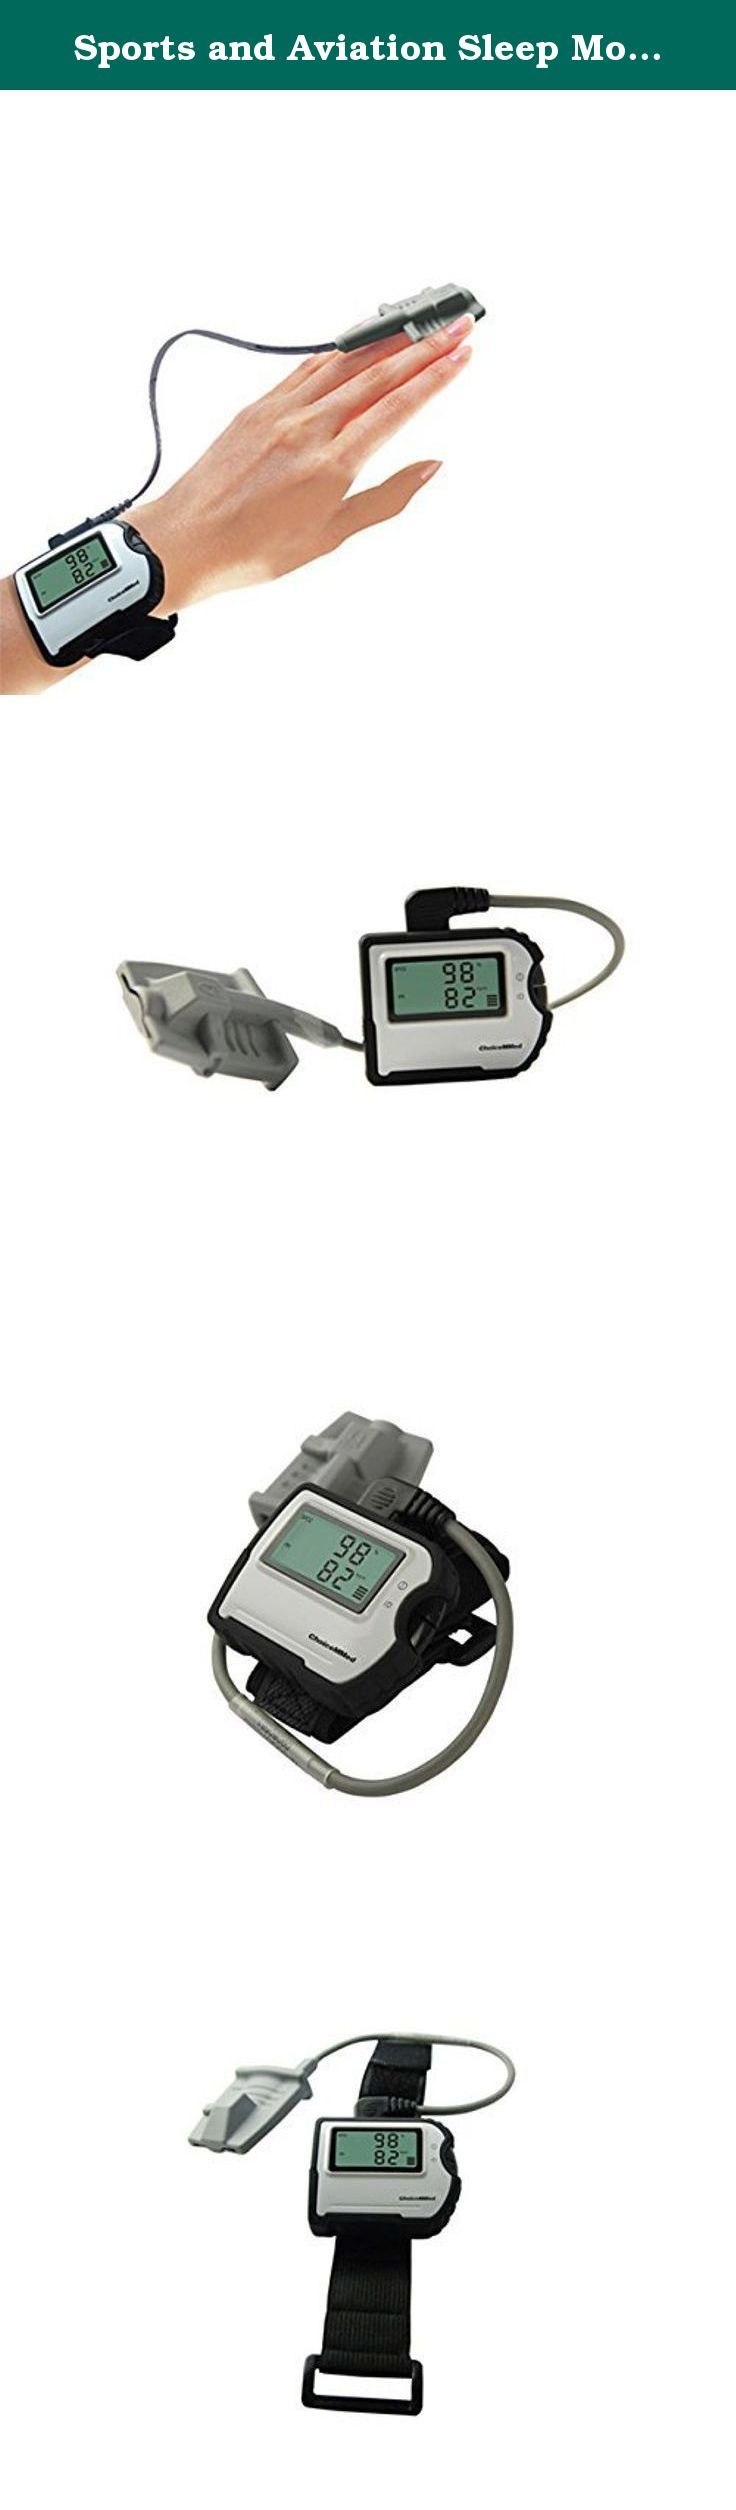 Sports and Aviation Sleep Monitor Wrist Wear Fingrtip Pulse Rate and Blood Oxygen Saturation Monitor. Product introduction: MD300W1 Sleeping Monitor are portable and easy to use, it can be applied to the sleep center or sleep clinic. It also can be used in home environment. In developed countries, people care about and will monitor their sleep condition anytime and anywhere. Our products can be used in hospital, clinic, sleep study center, personal doctor office, insurance company, family...